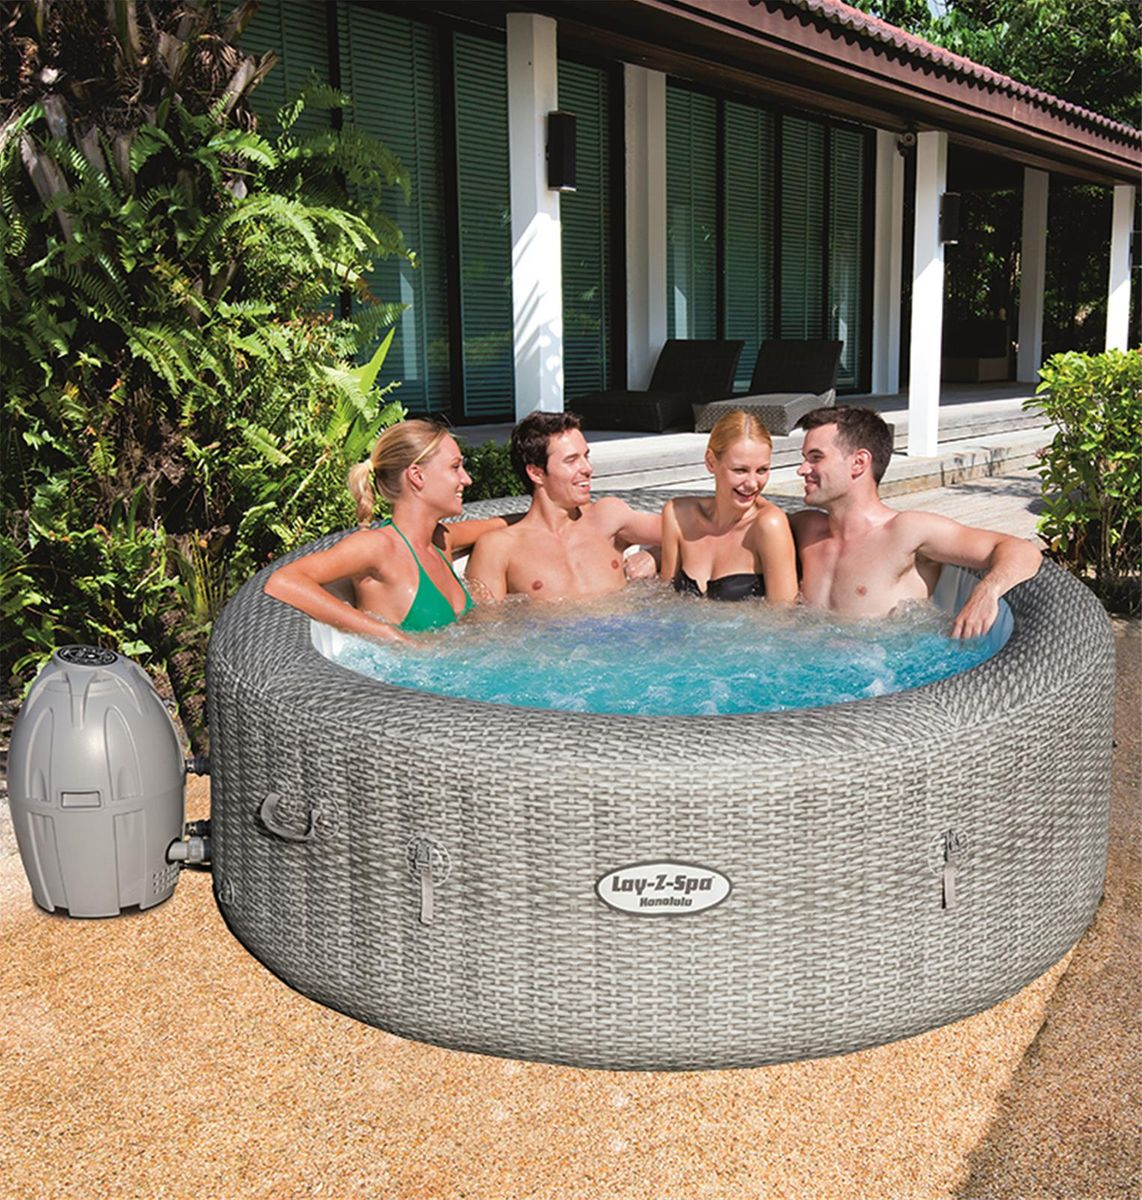 SPA GONFLABLE BESTWAY LAY-Z-SPA HONOLULU 4-6 pers